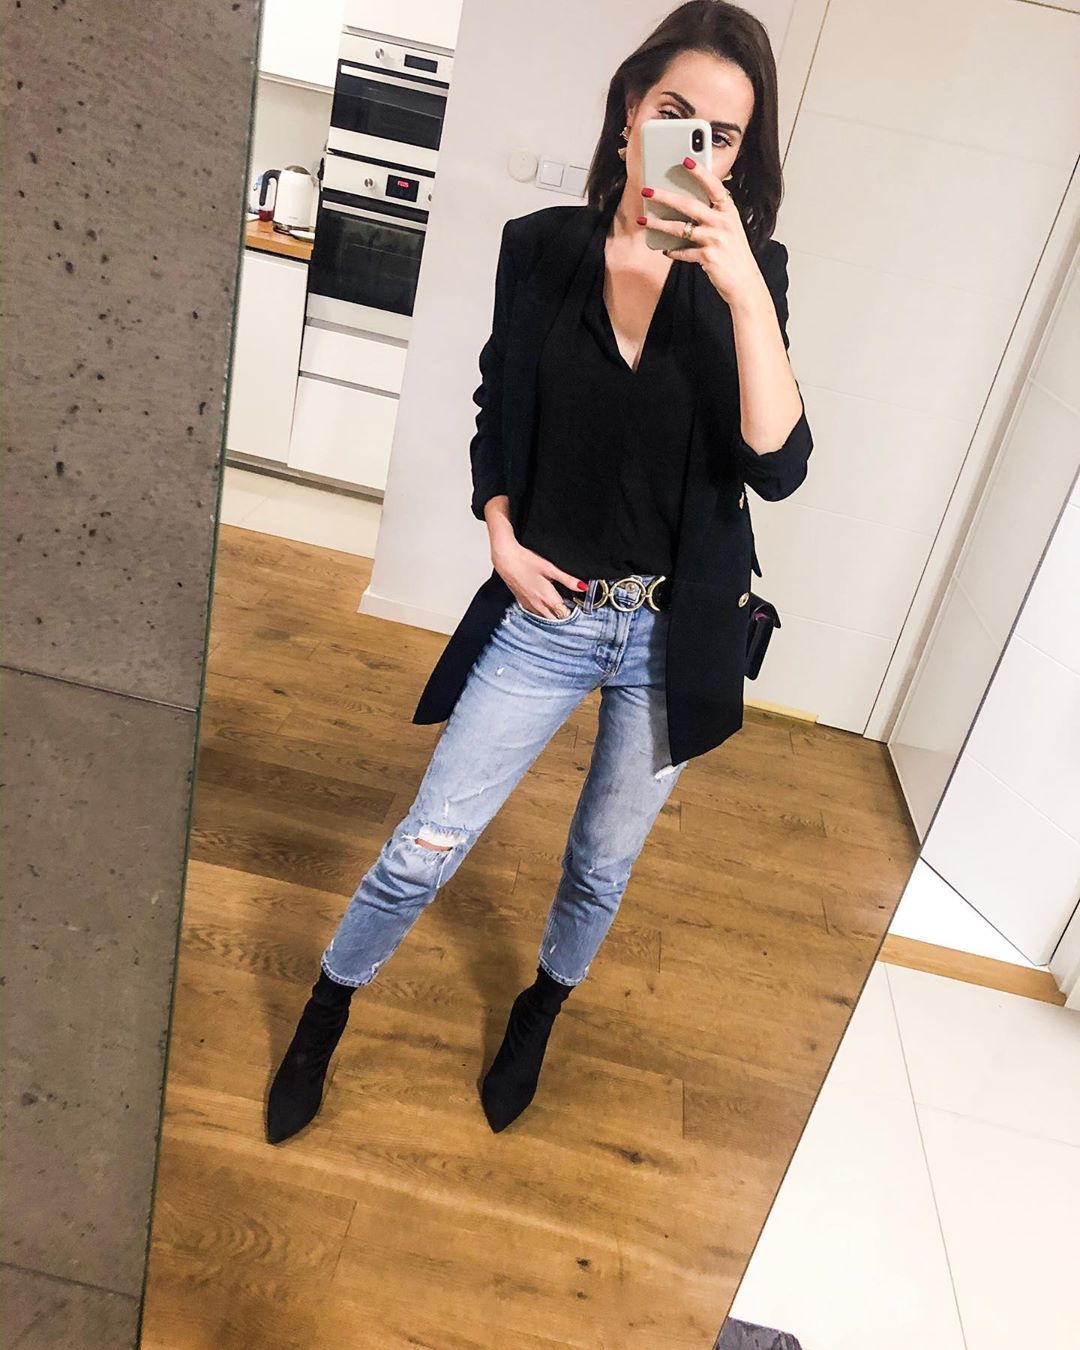 Zophia Osobista Stylistka On Instagram Simple Classic Ootd Outfit Style Outfits Fashion Style